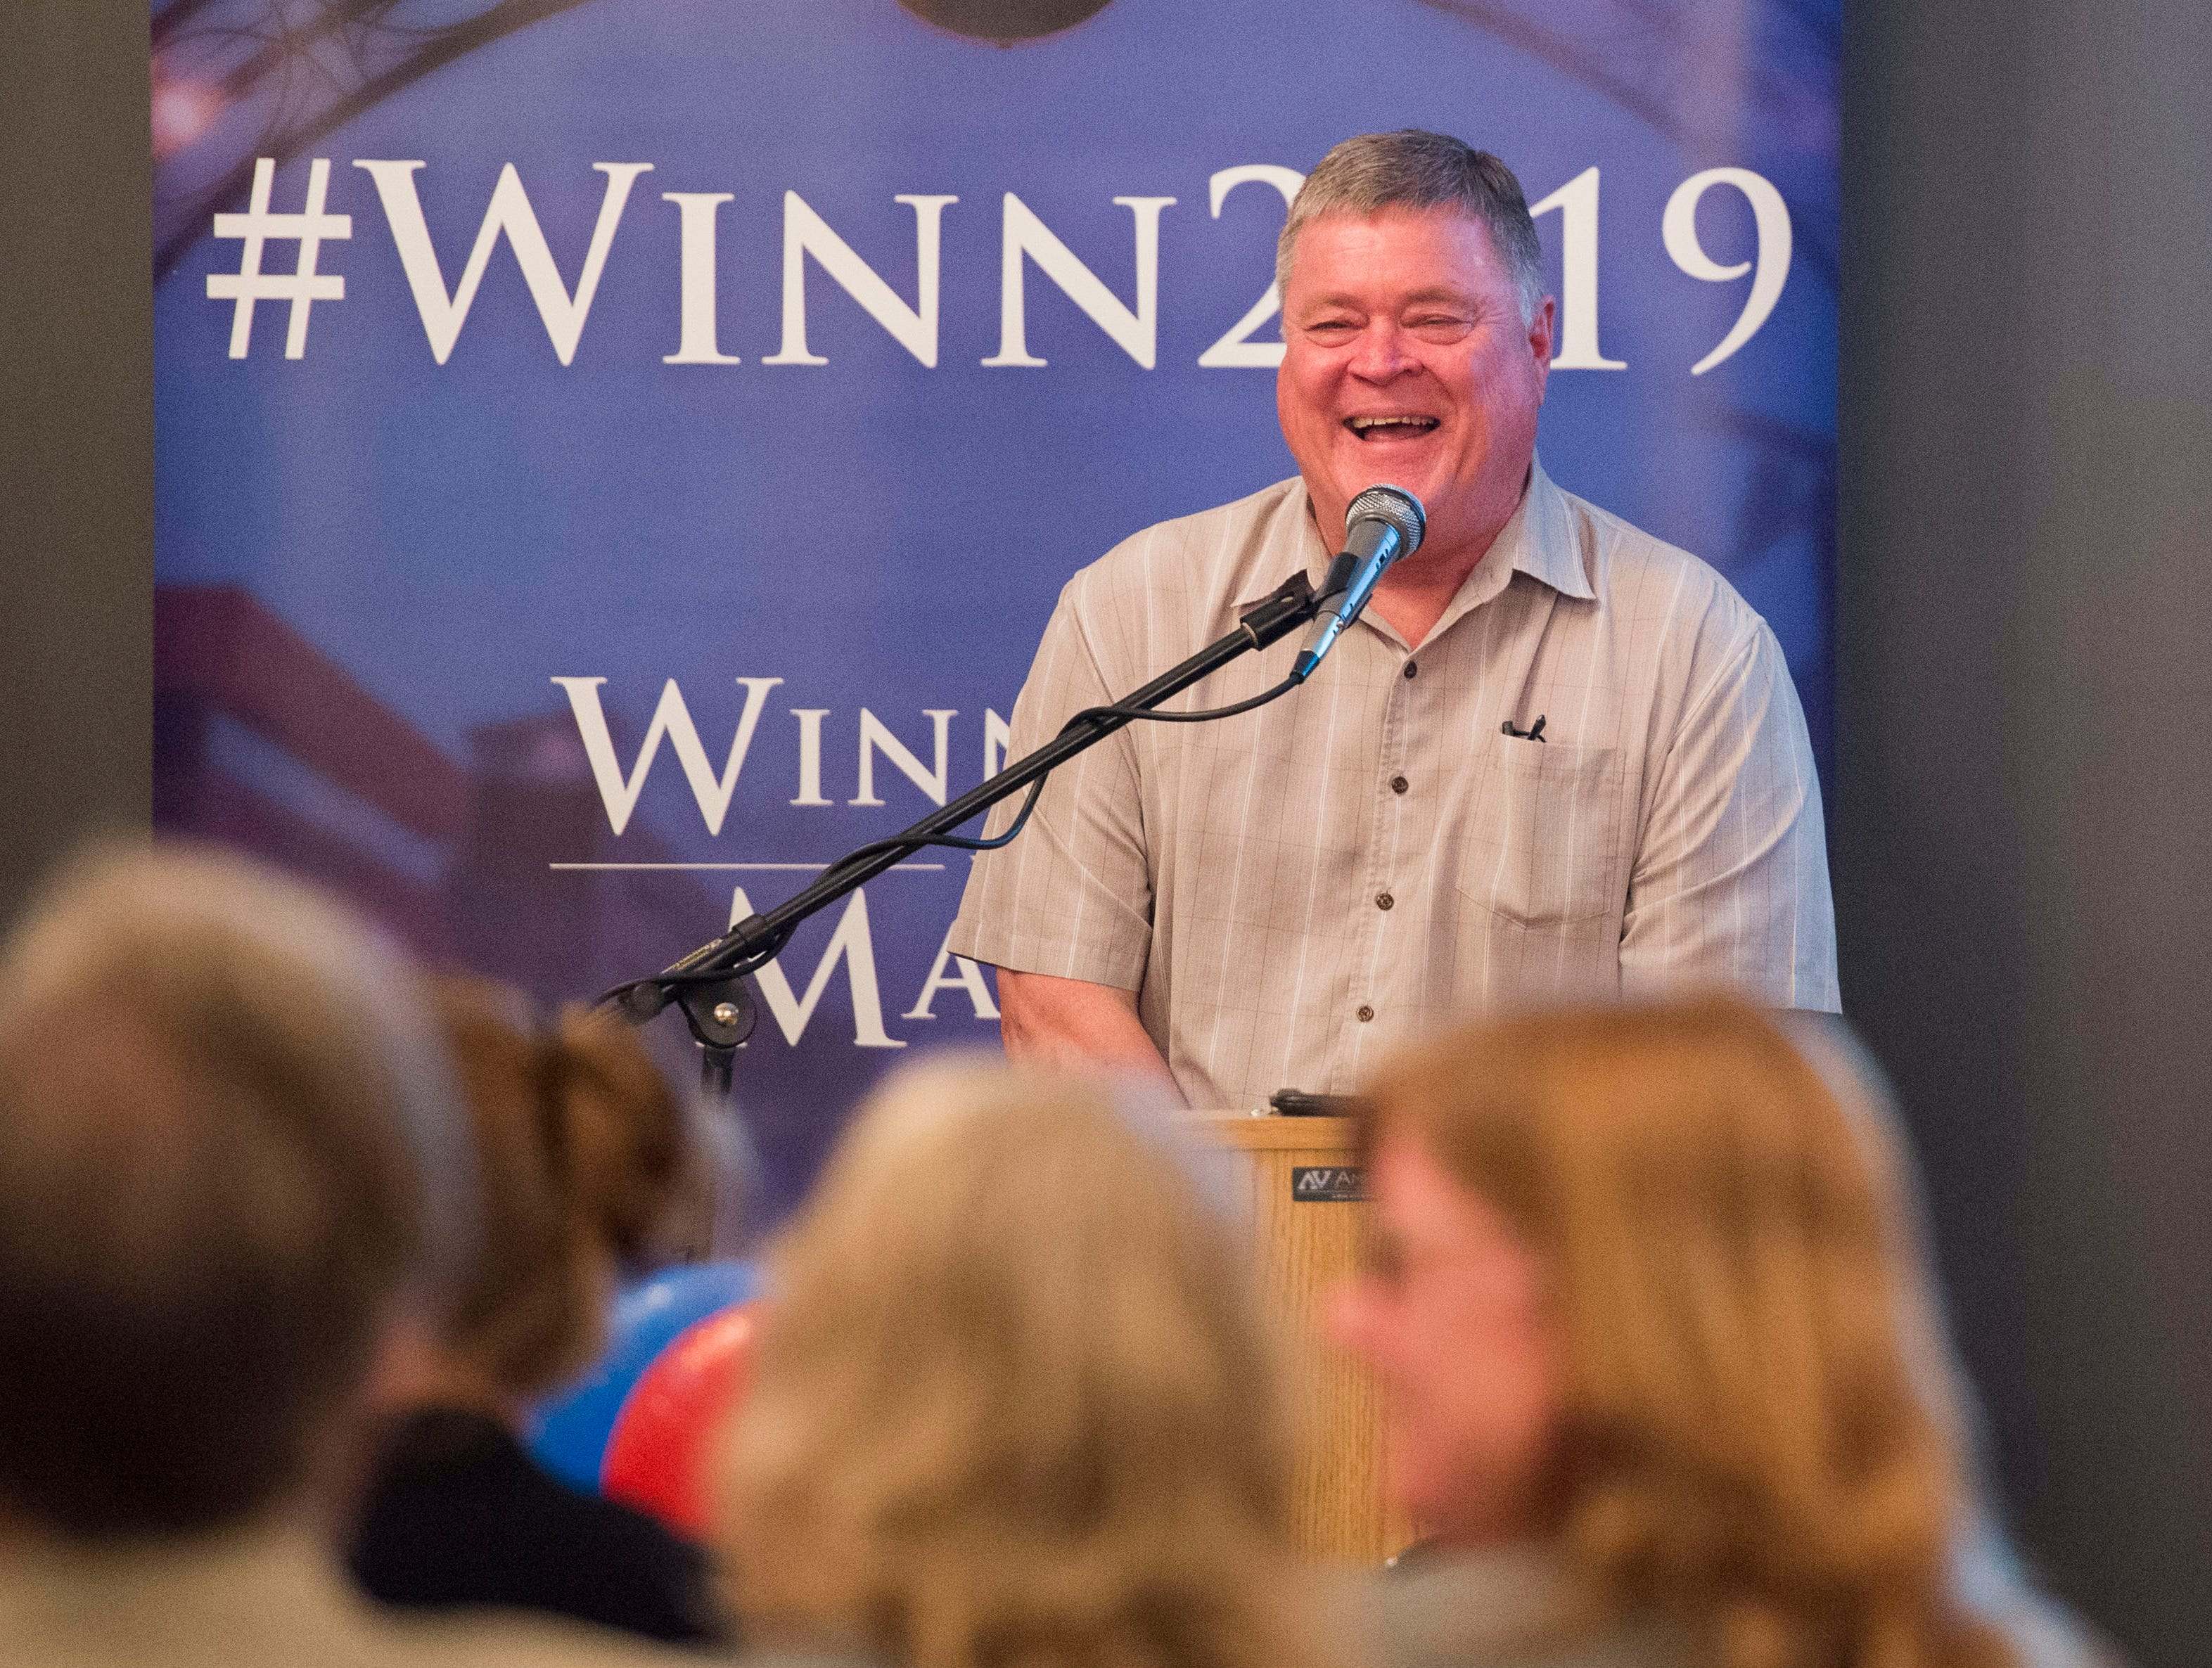 City council at-large candidate Ron Beane (R) address the crowd during the Vanderburgh County Republican Party's watch party at Sauced! restaurant on Haynie's Corner Tuesday, May 7, 2019.